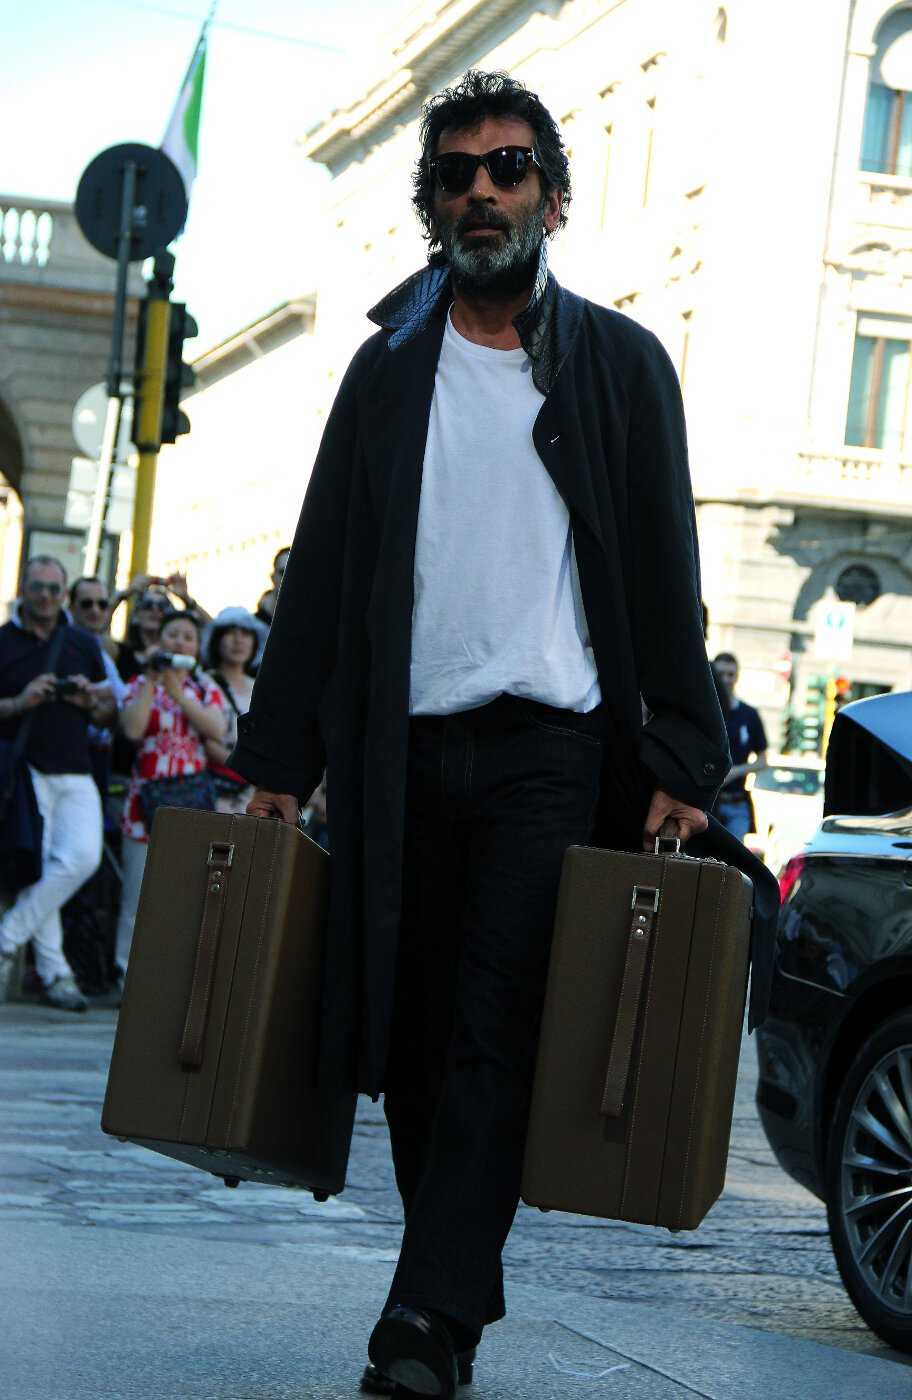 trussardi-spring-summer-2012-men-collection-milano-fashion-week-2012-trussardi-primavera-estate-catwalk-2012